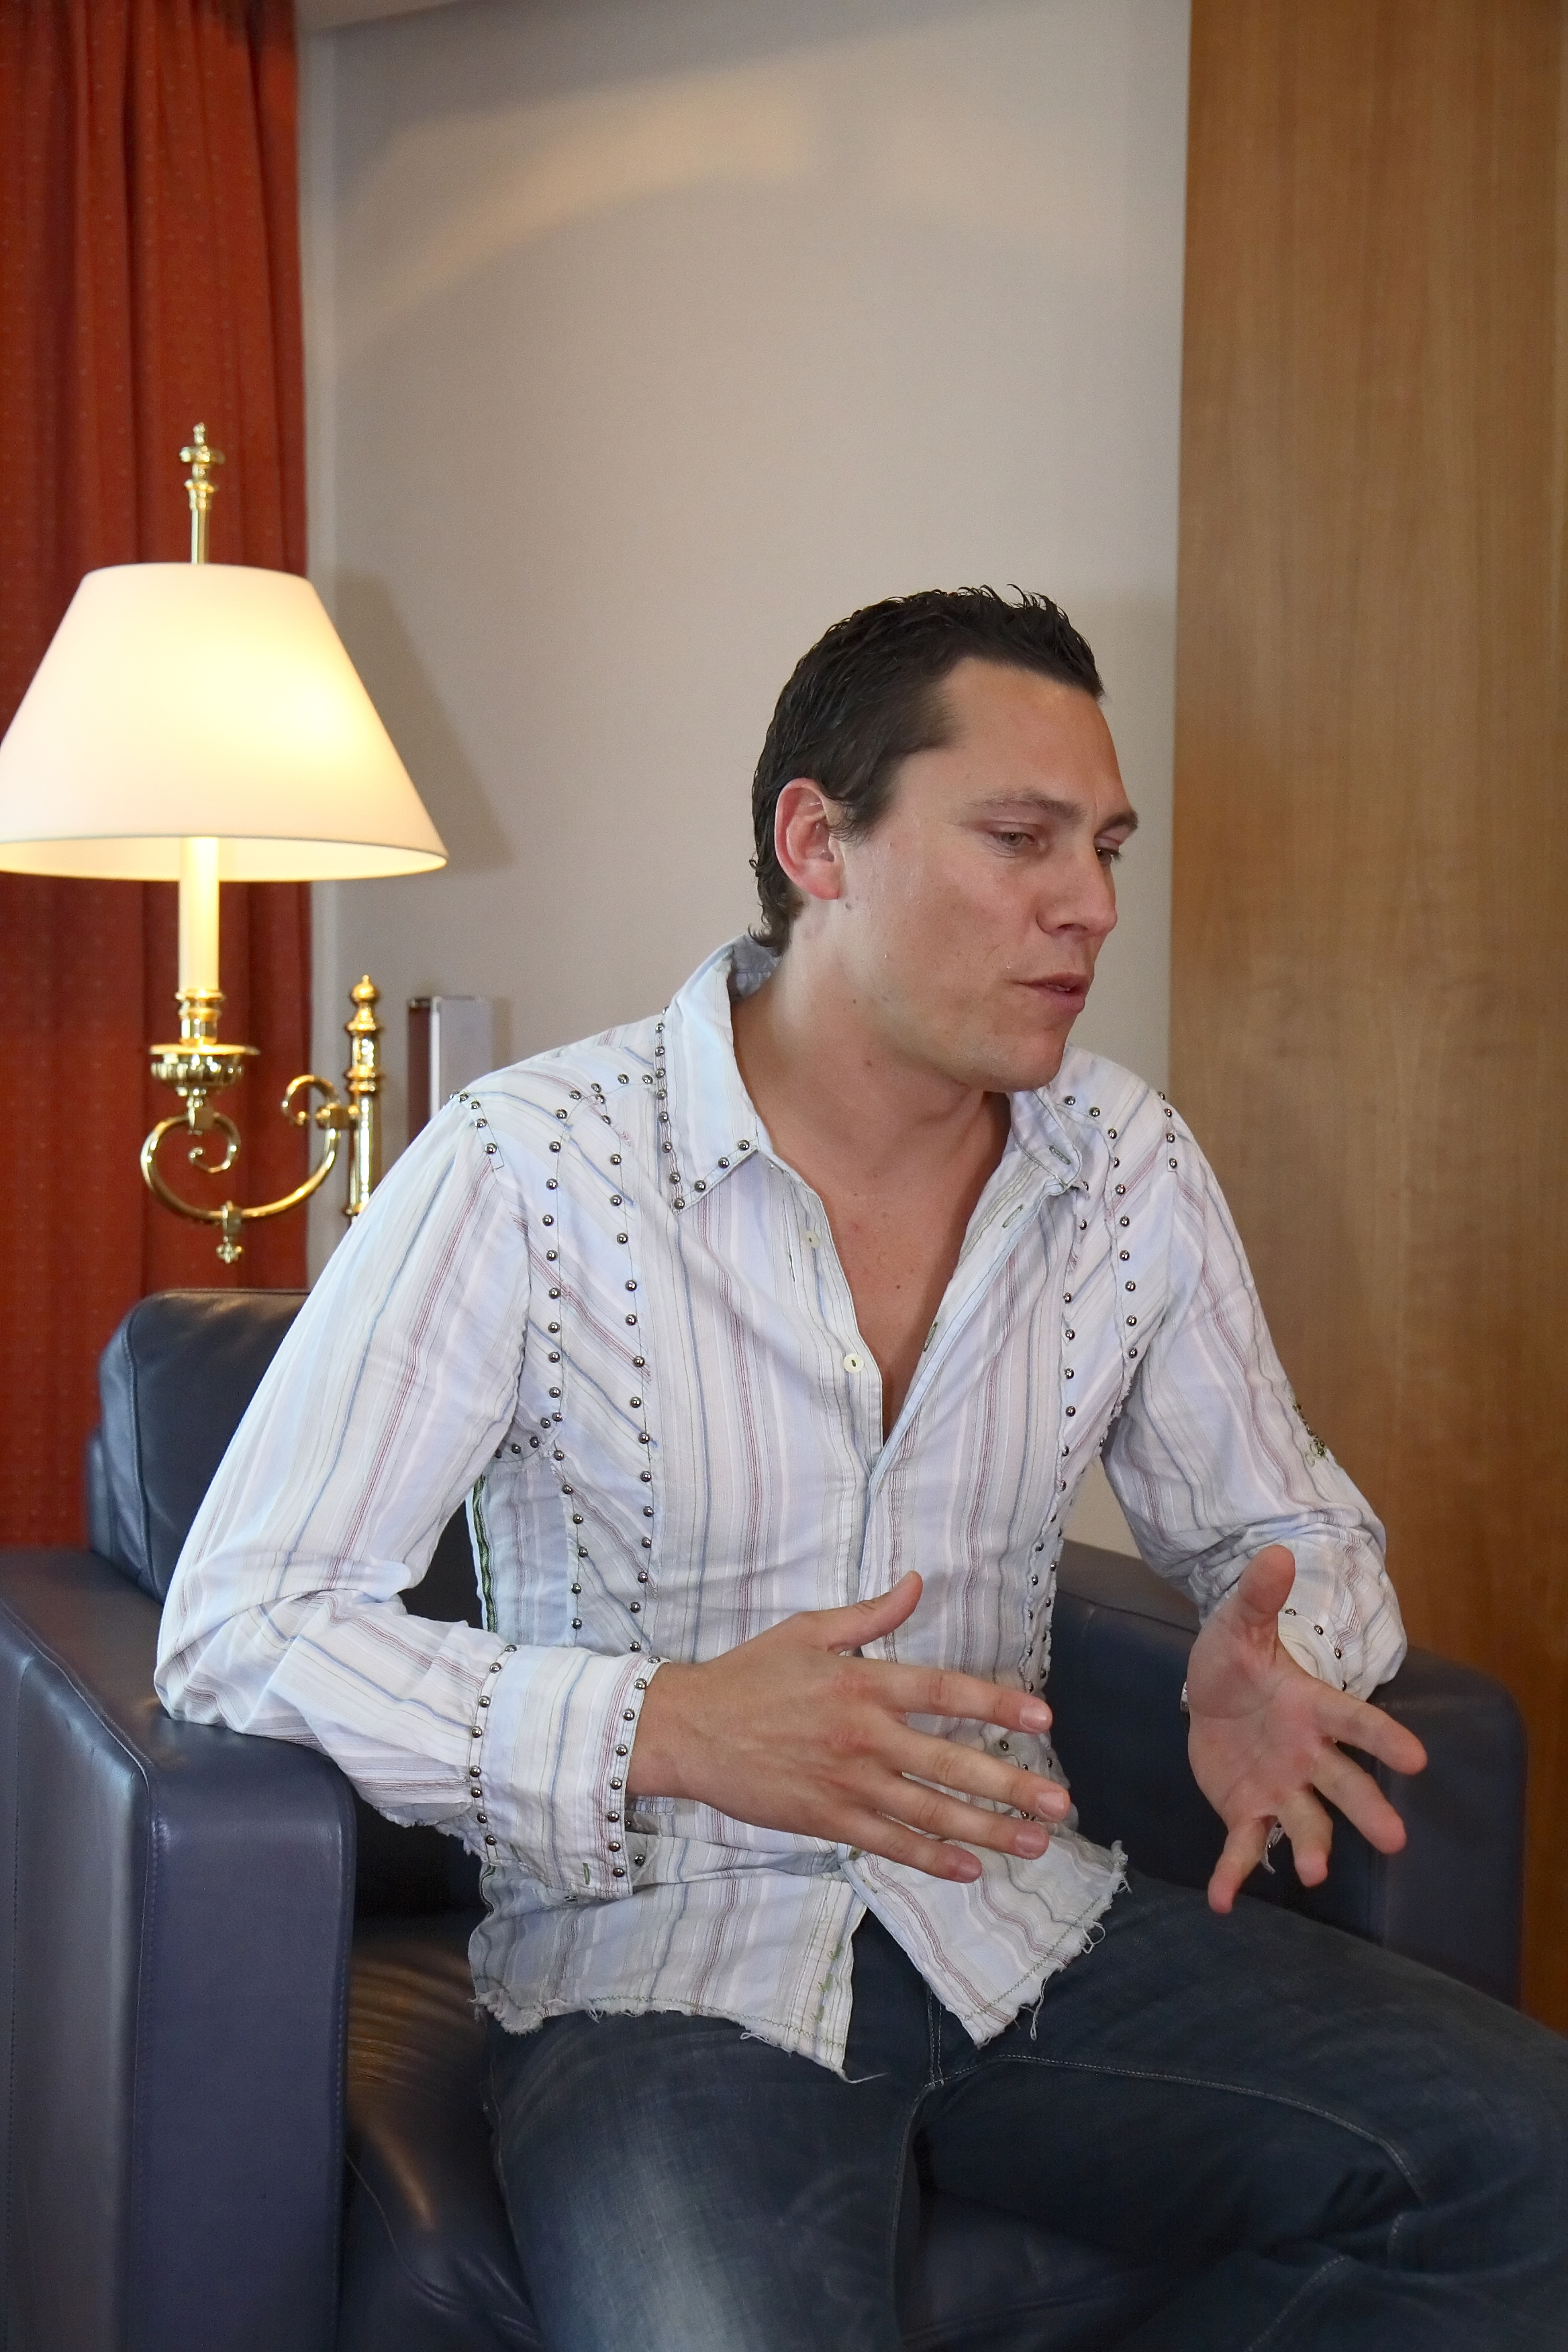 The 49-year old son of father (?) and mother(?) DJ Tiësto in 2018 photo. DJ Tiësto earned a unknown million dollar salary - leaving the net worth at 75 million in 2018